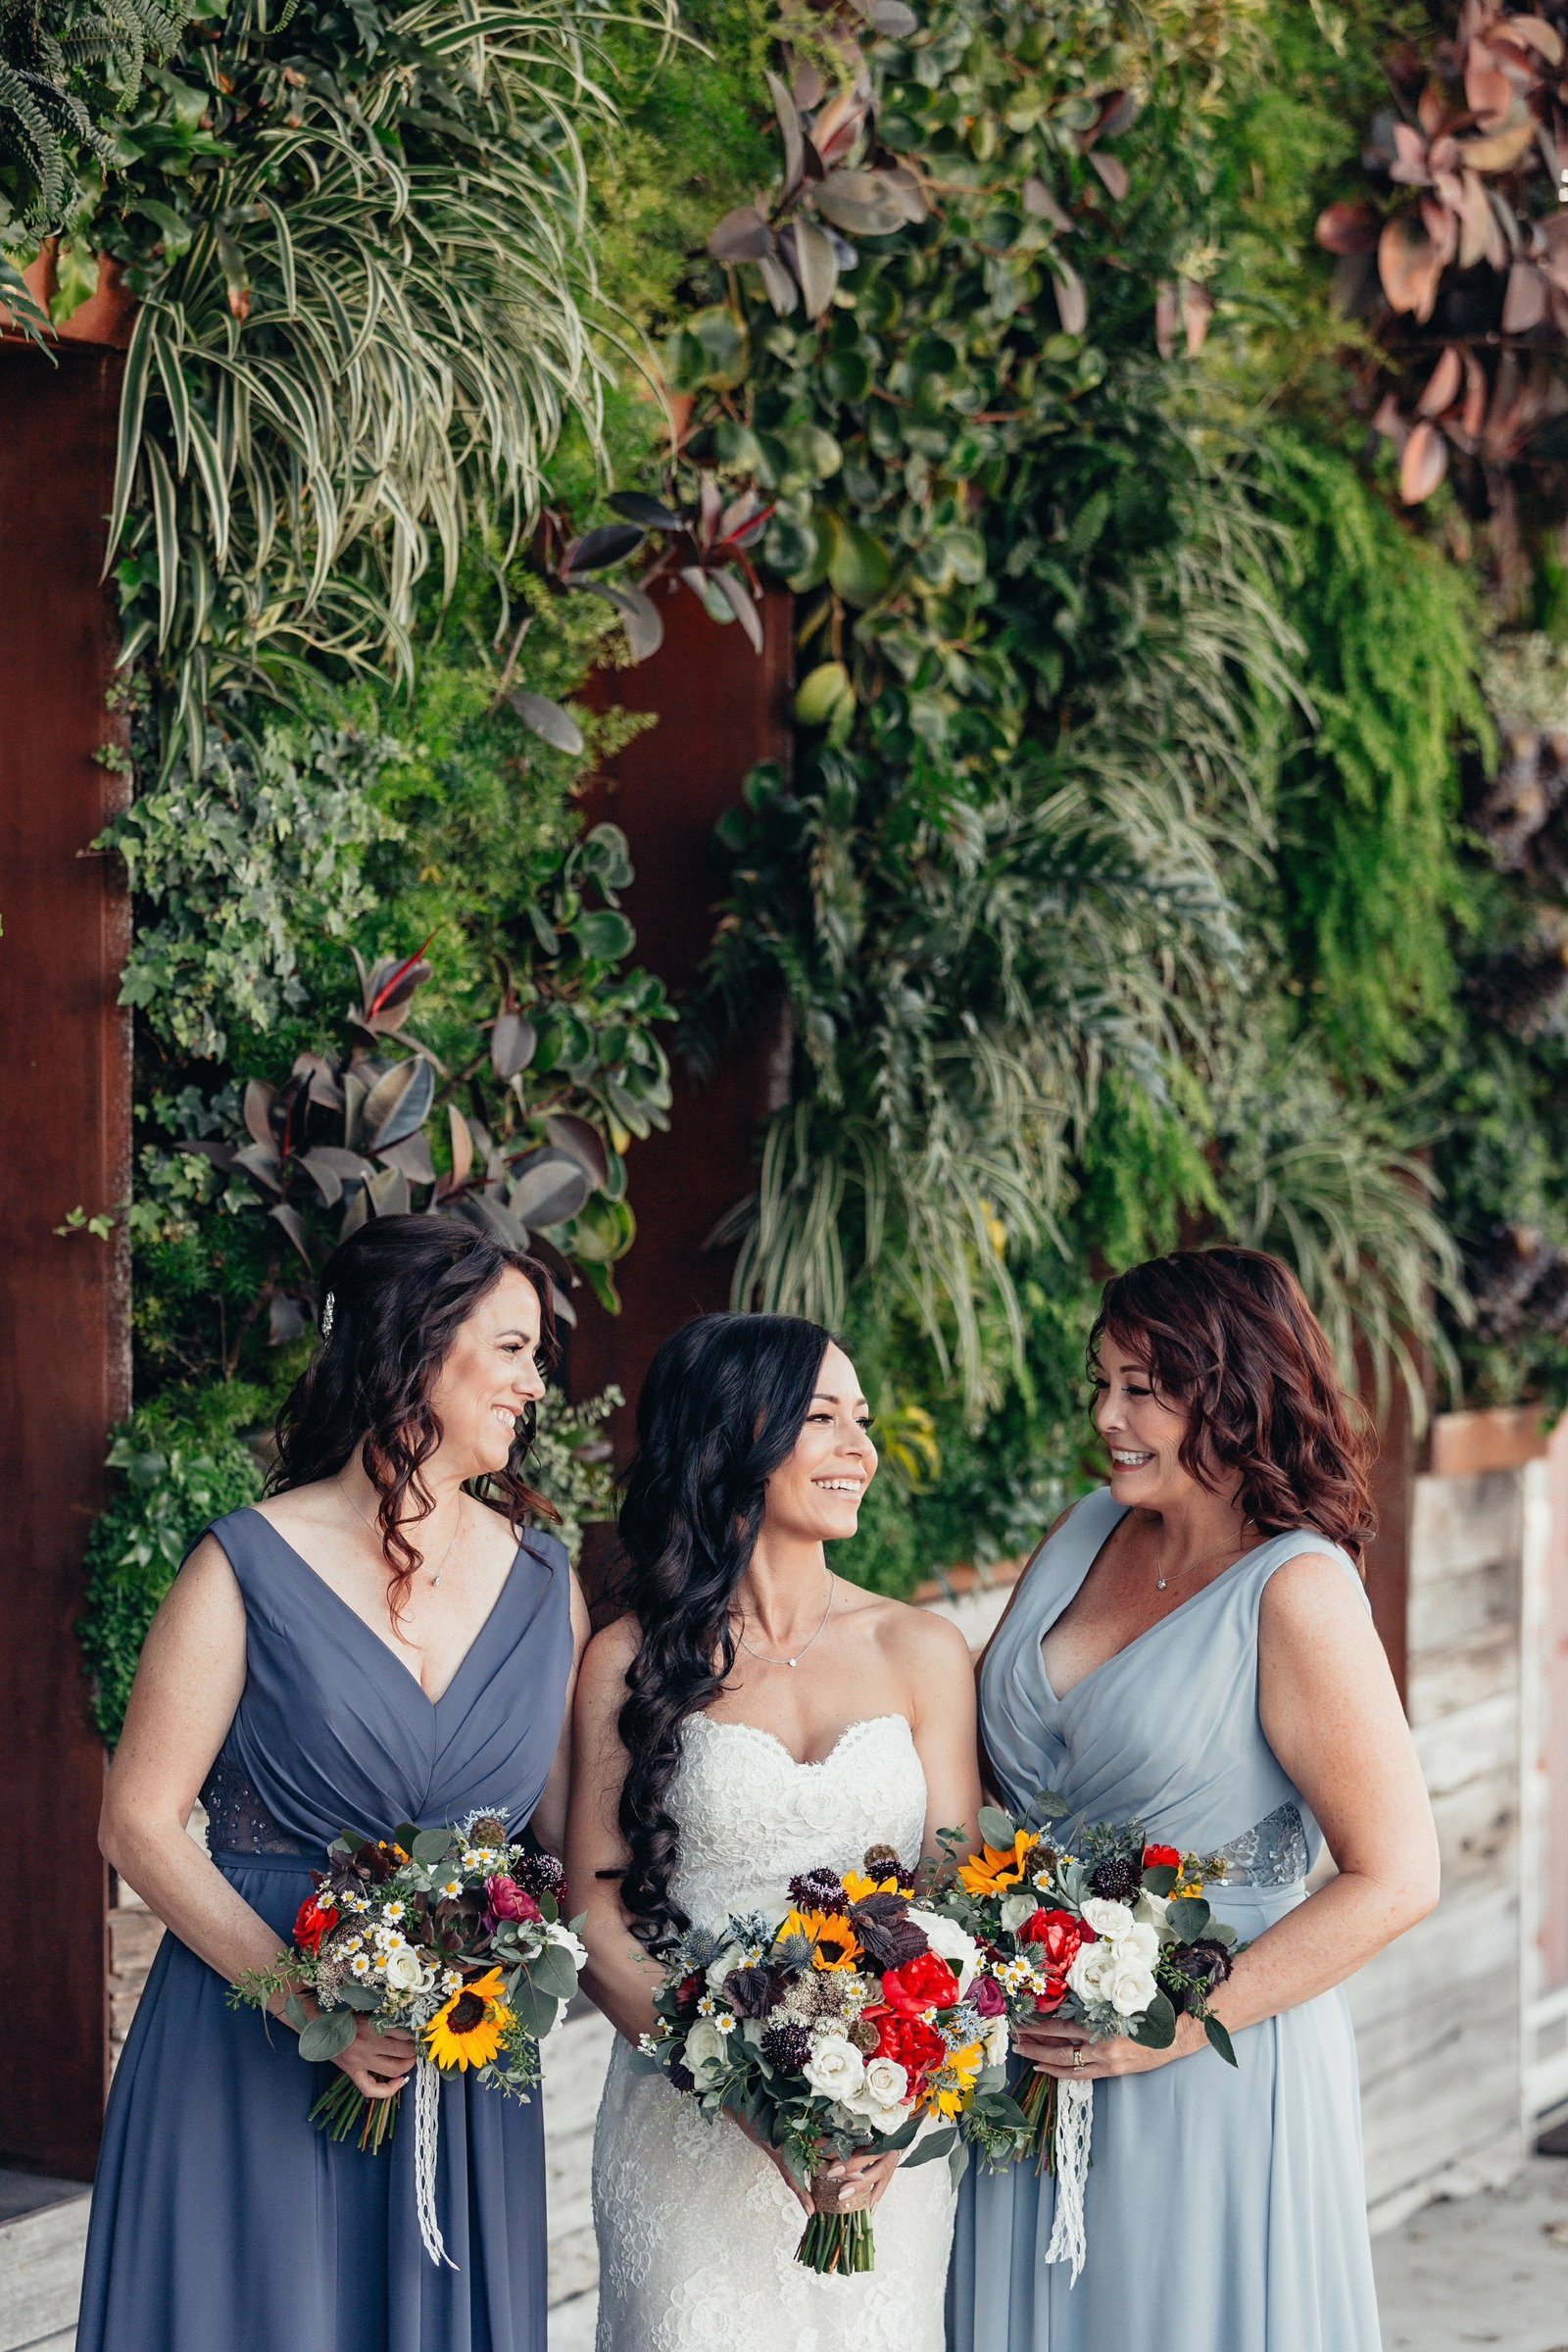 741hotel-laguna-beach-wedding48